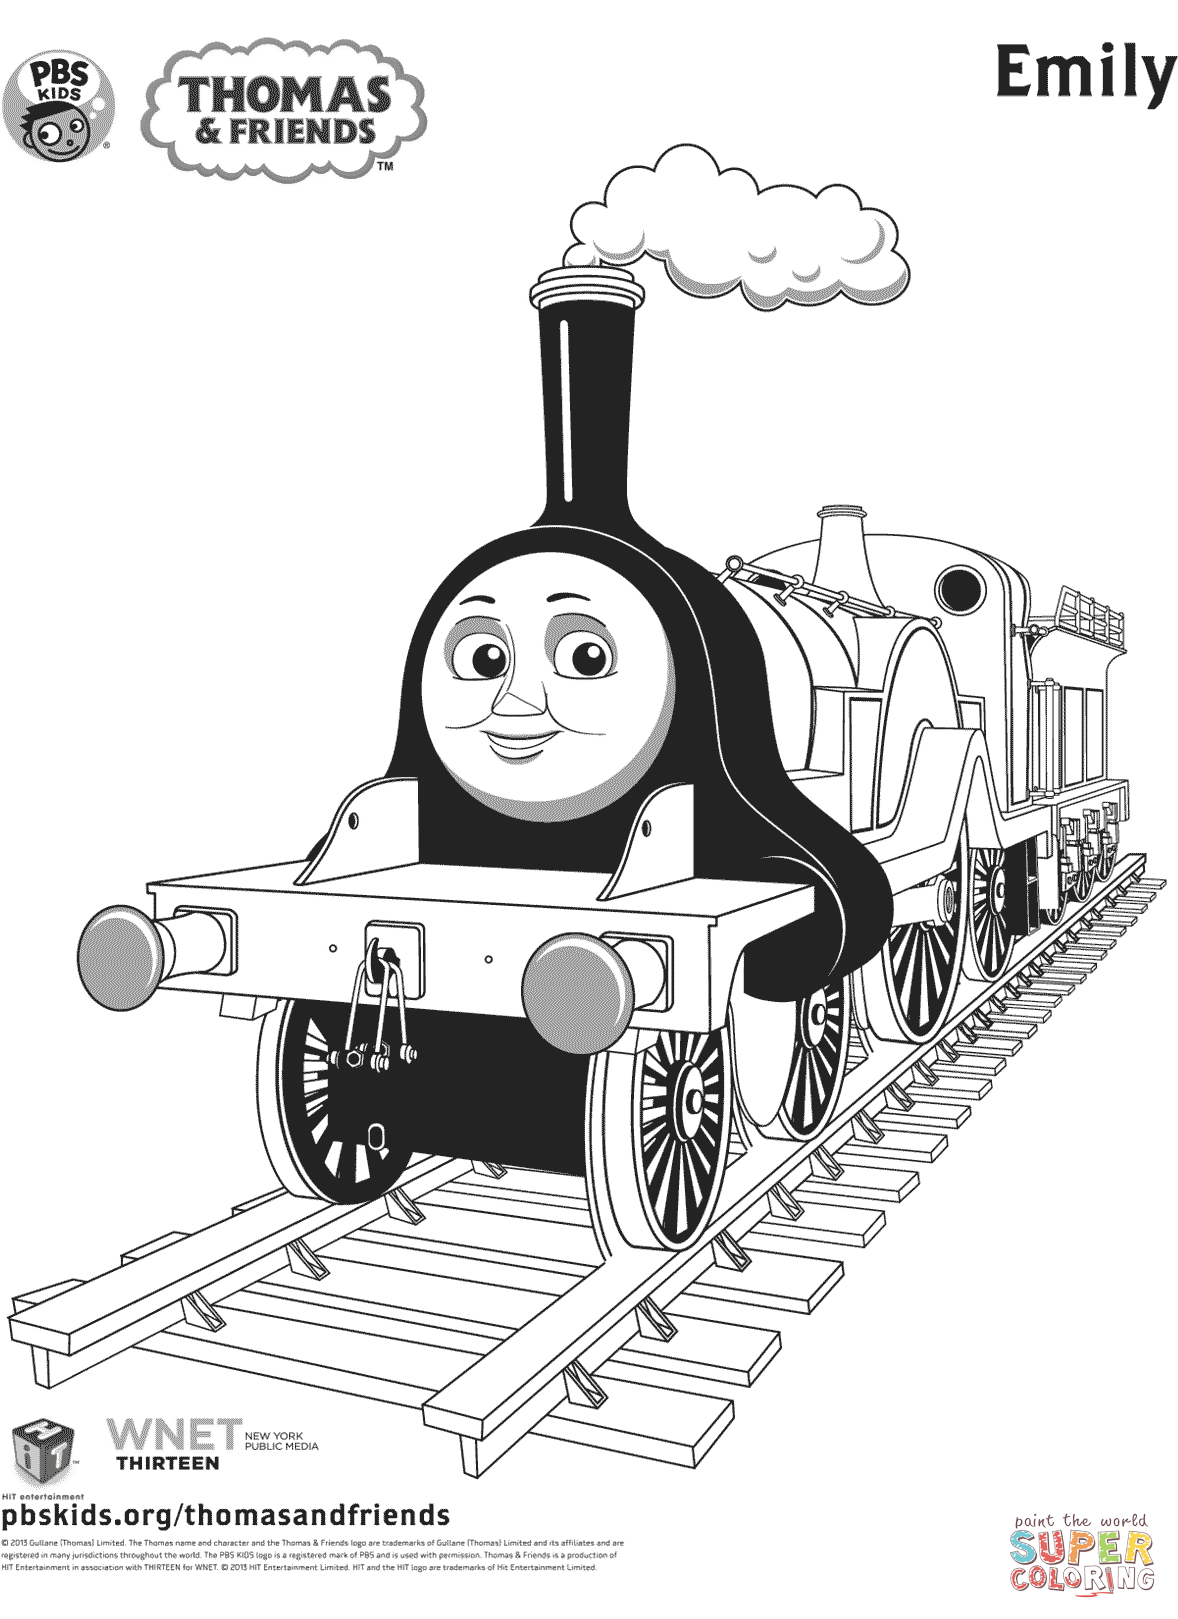 thomas and friends drawing pages emily from thomas friends coloring page free printable drawing pages friends thomas and